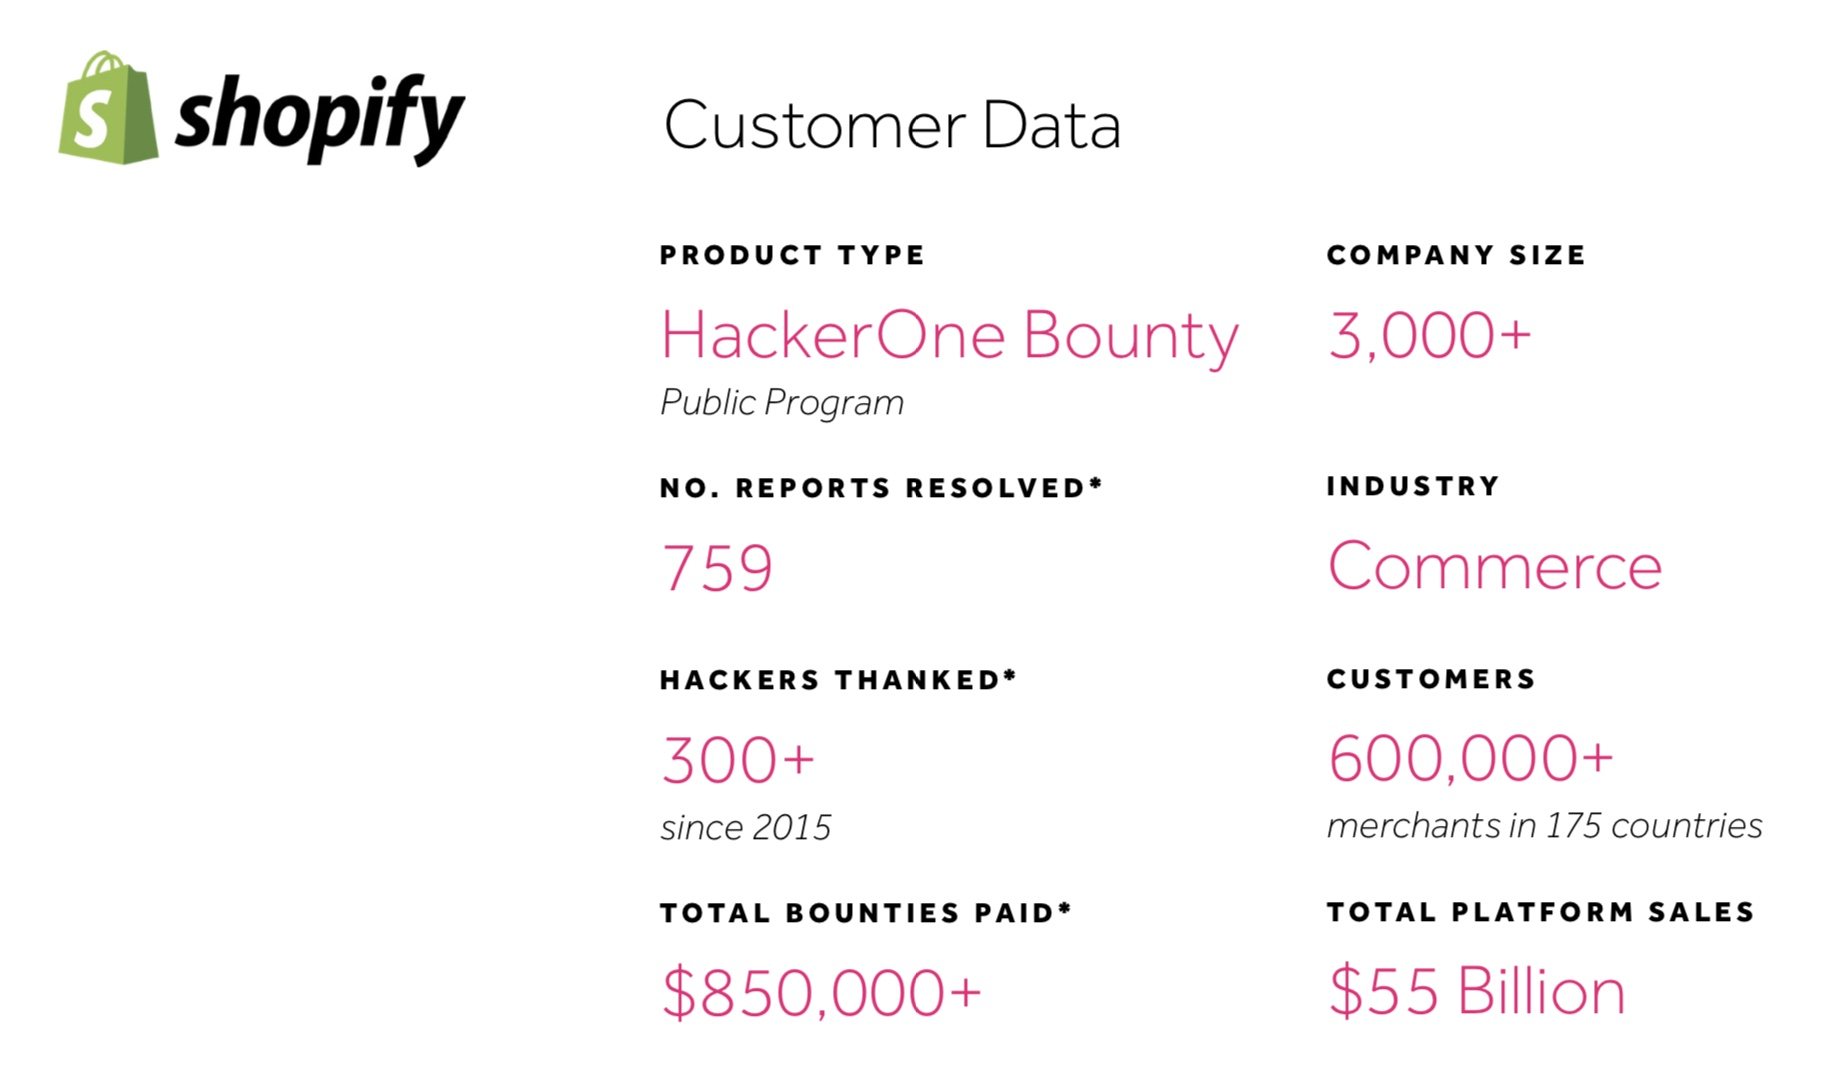 Shopify Thanks Over 300 Hackers, Pays $850,000+ to Hackers ...